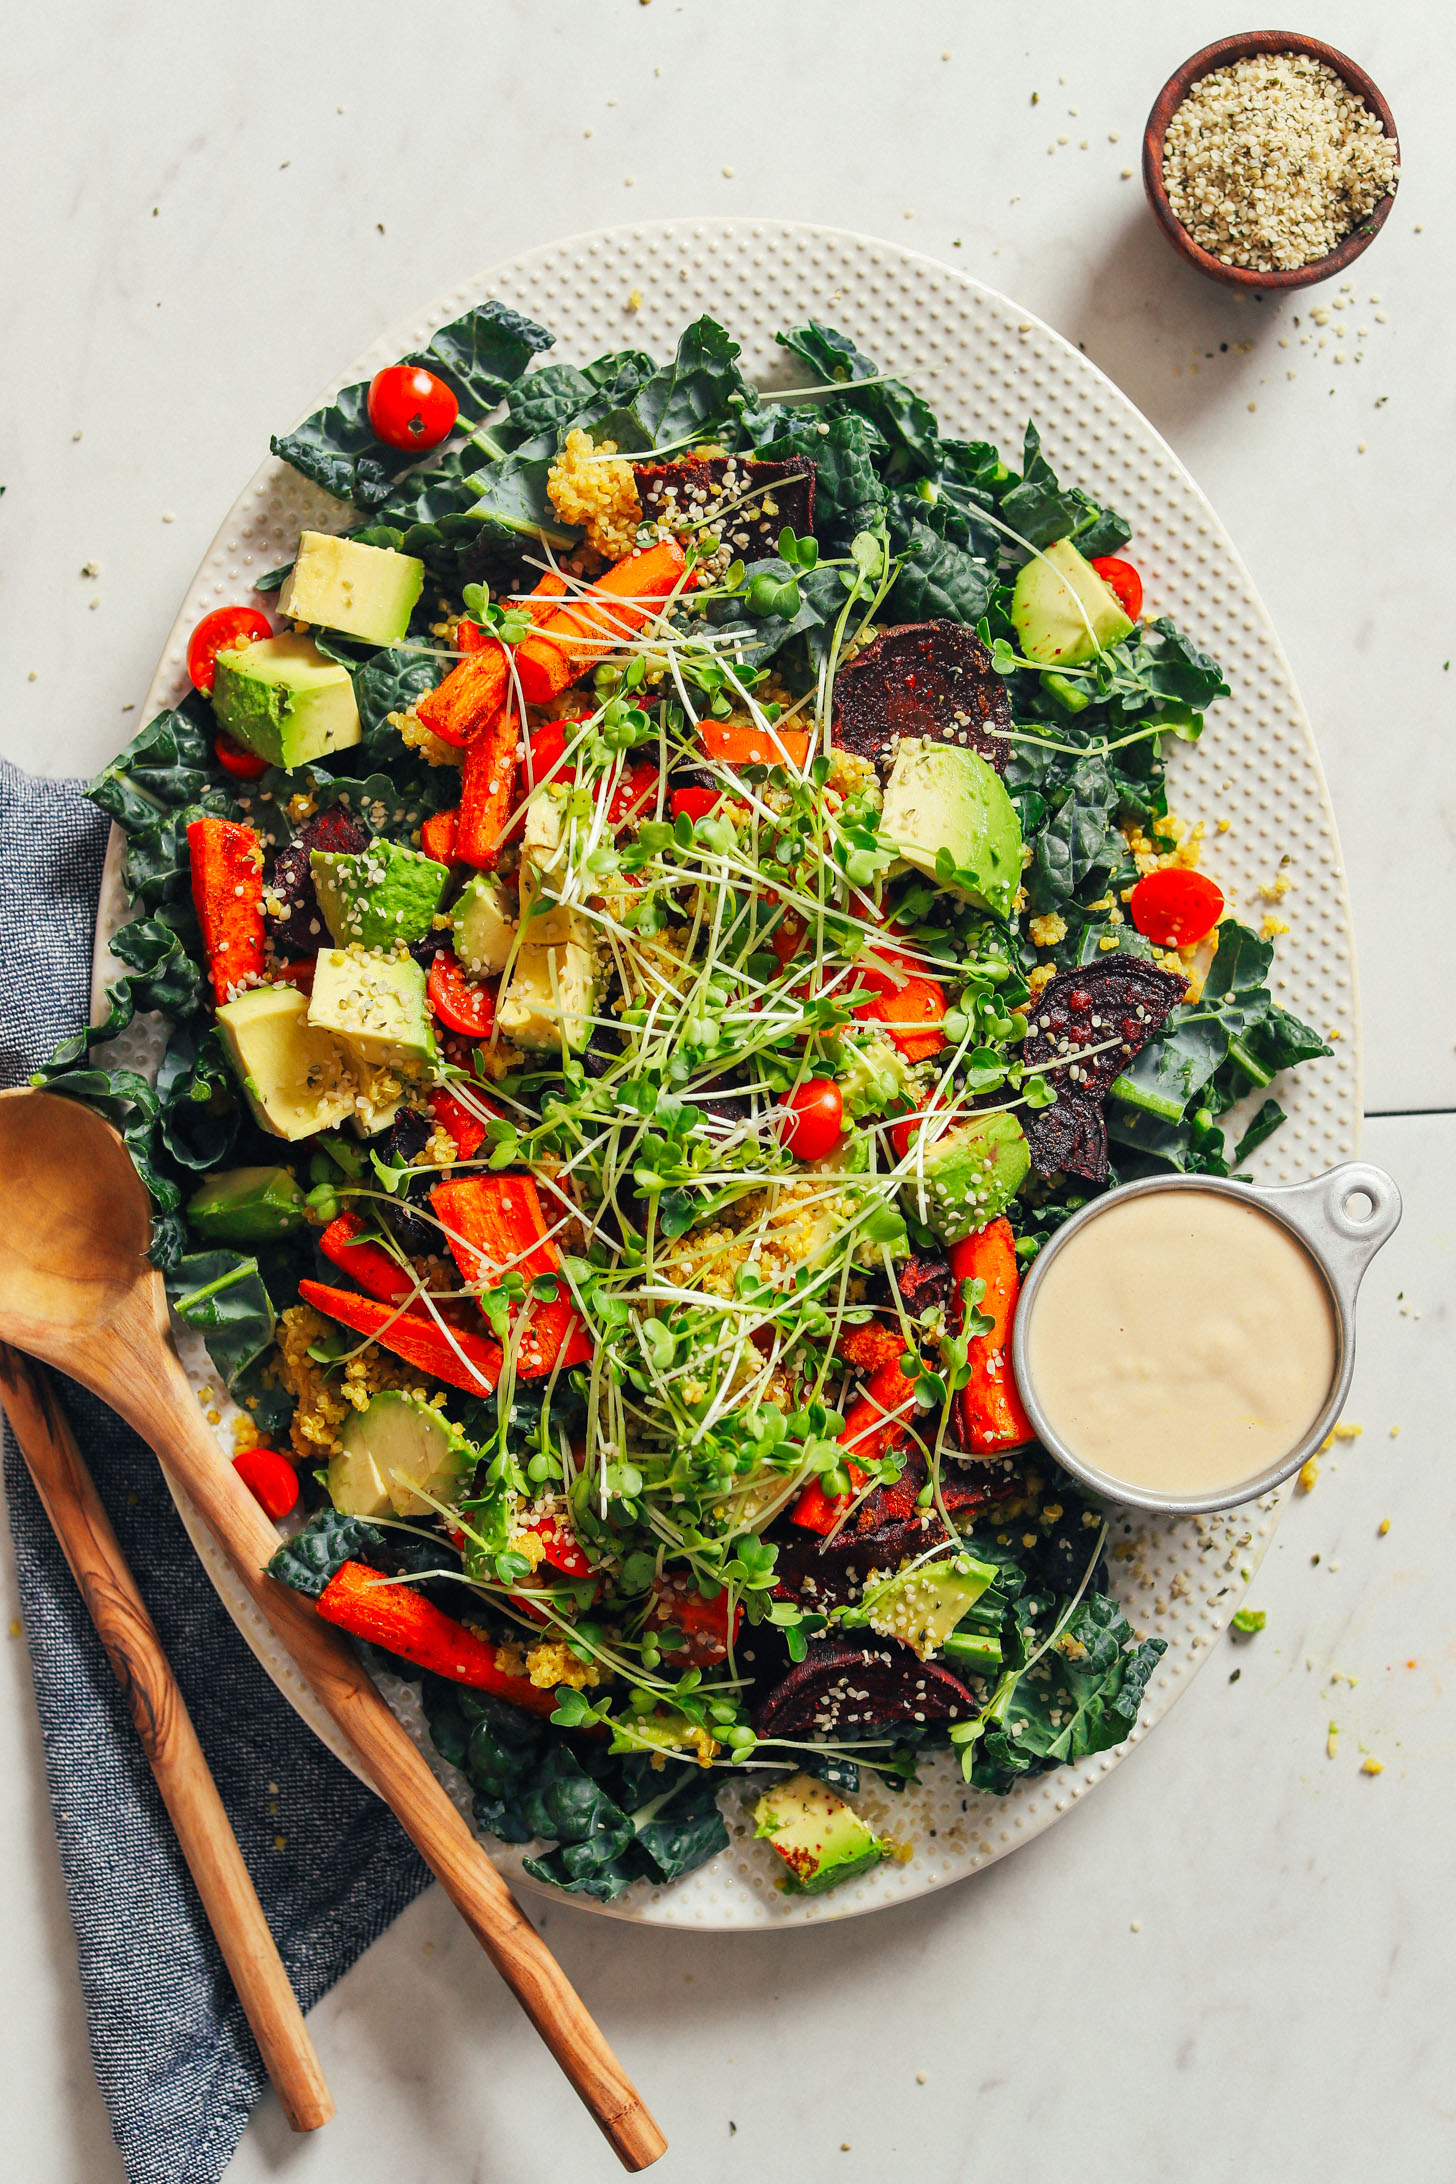 Large platter filled with vegan and gluten-free Loaded Kale Salad with sides of extra hemp seeds and tahini dressing